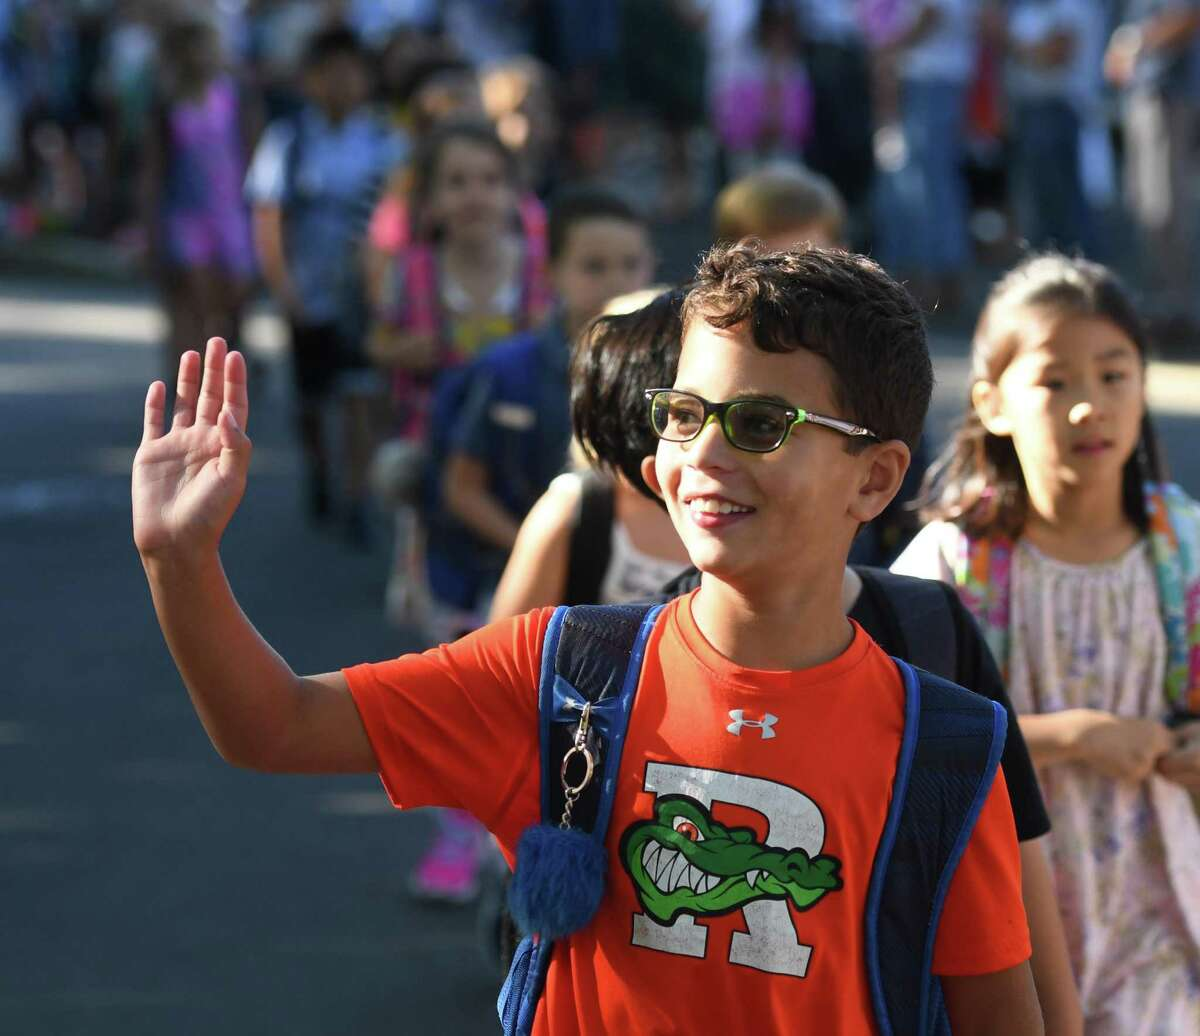 Third-grader Nash Goodman waves to parents in the crowd while walking with his new classmates in the Parade of Learners on the first day of school at Riverside School in the Riverside section of Greenwich, Conn. Thursday, Aug. 29, 2019.